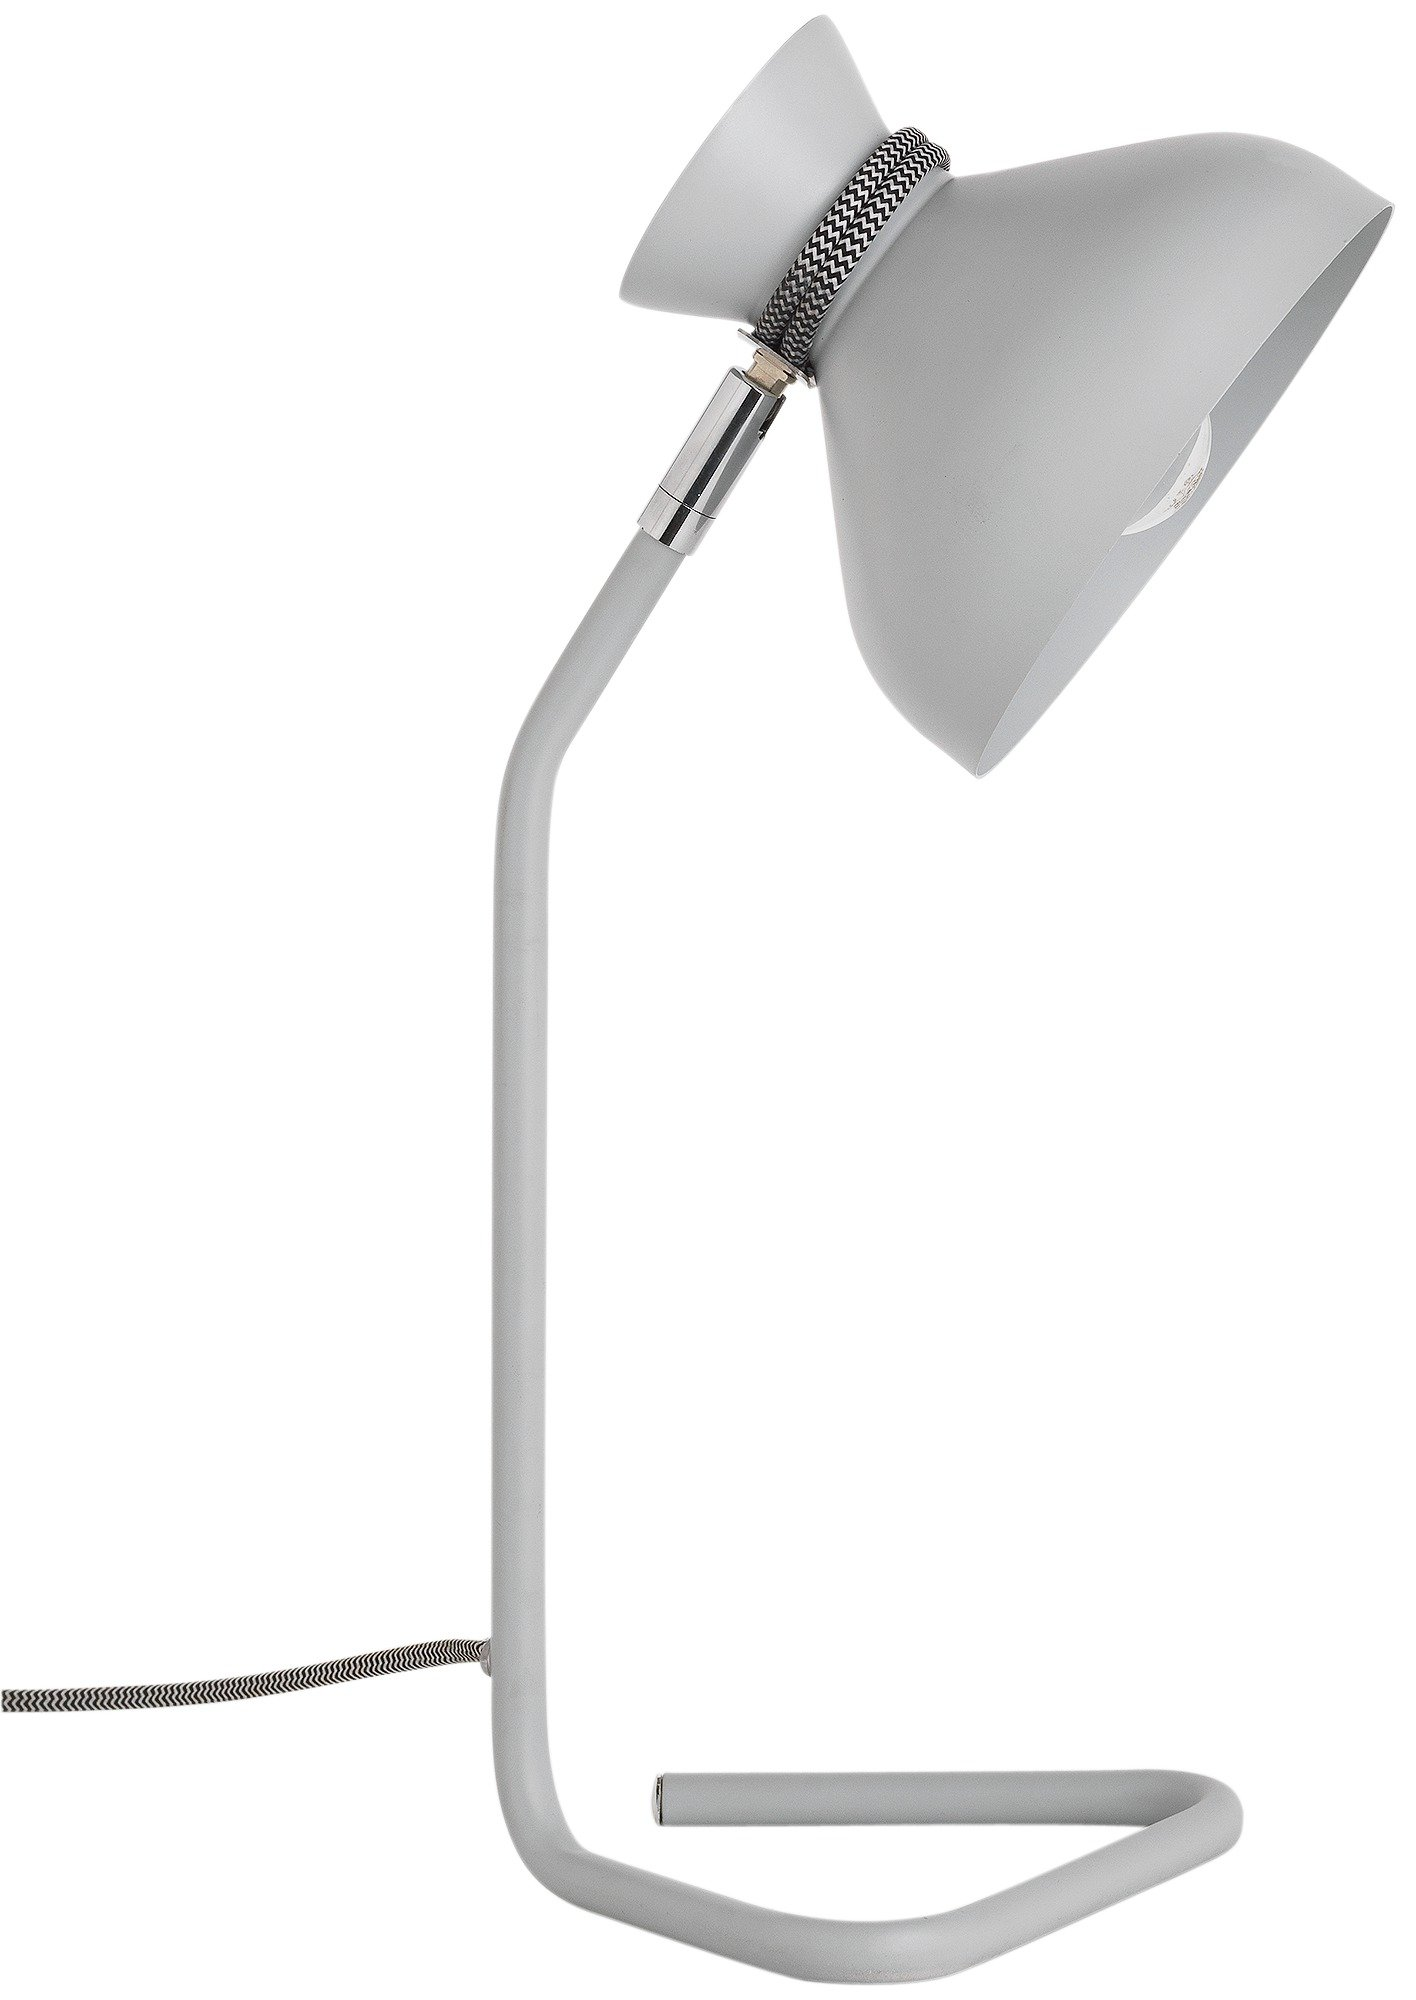 Image of Hygena Pola Table Lamp - Grey